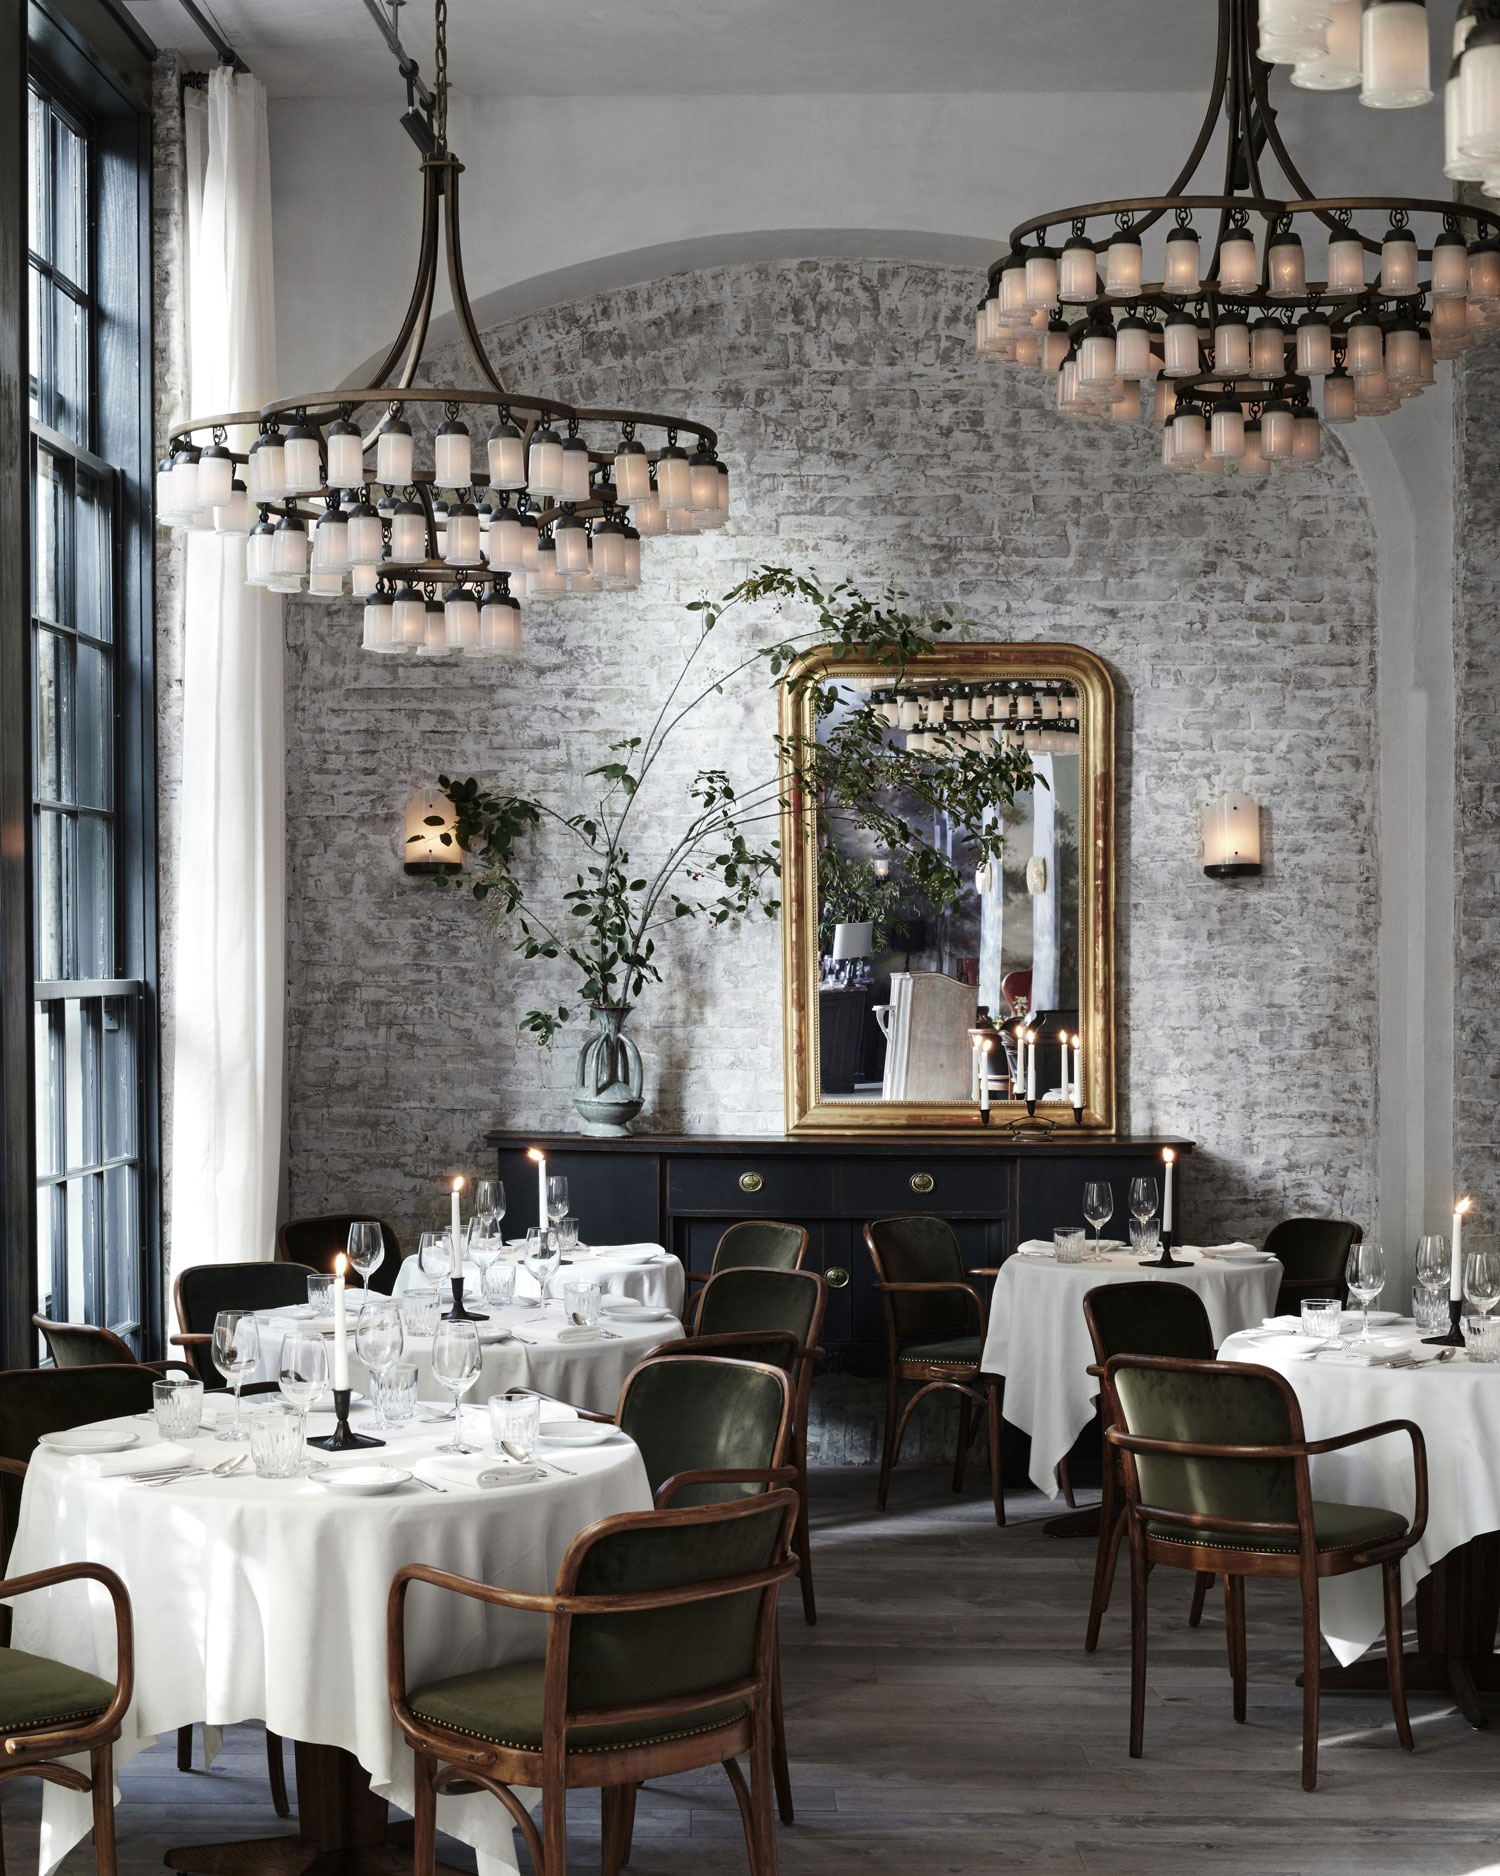 le-coucou-restaurant-new-nork-by-roman-williams-yellowtrace-01_01